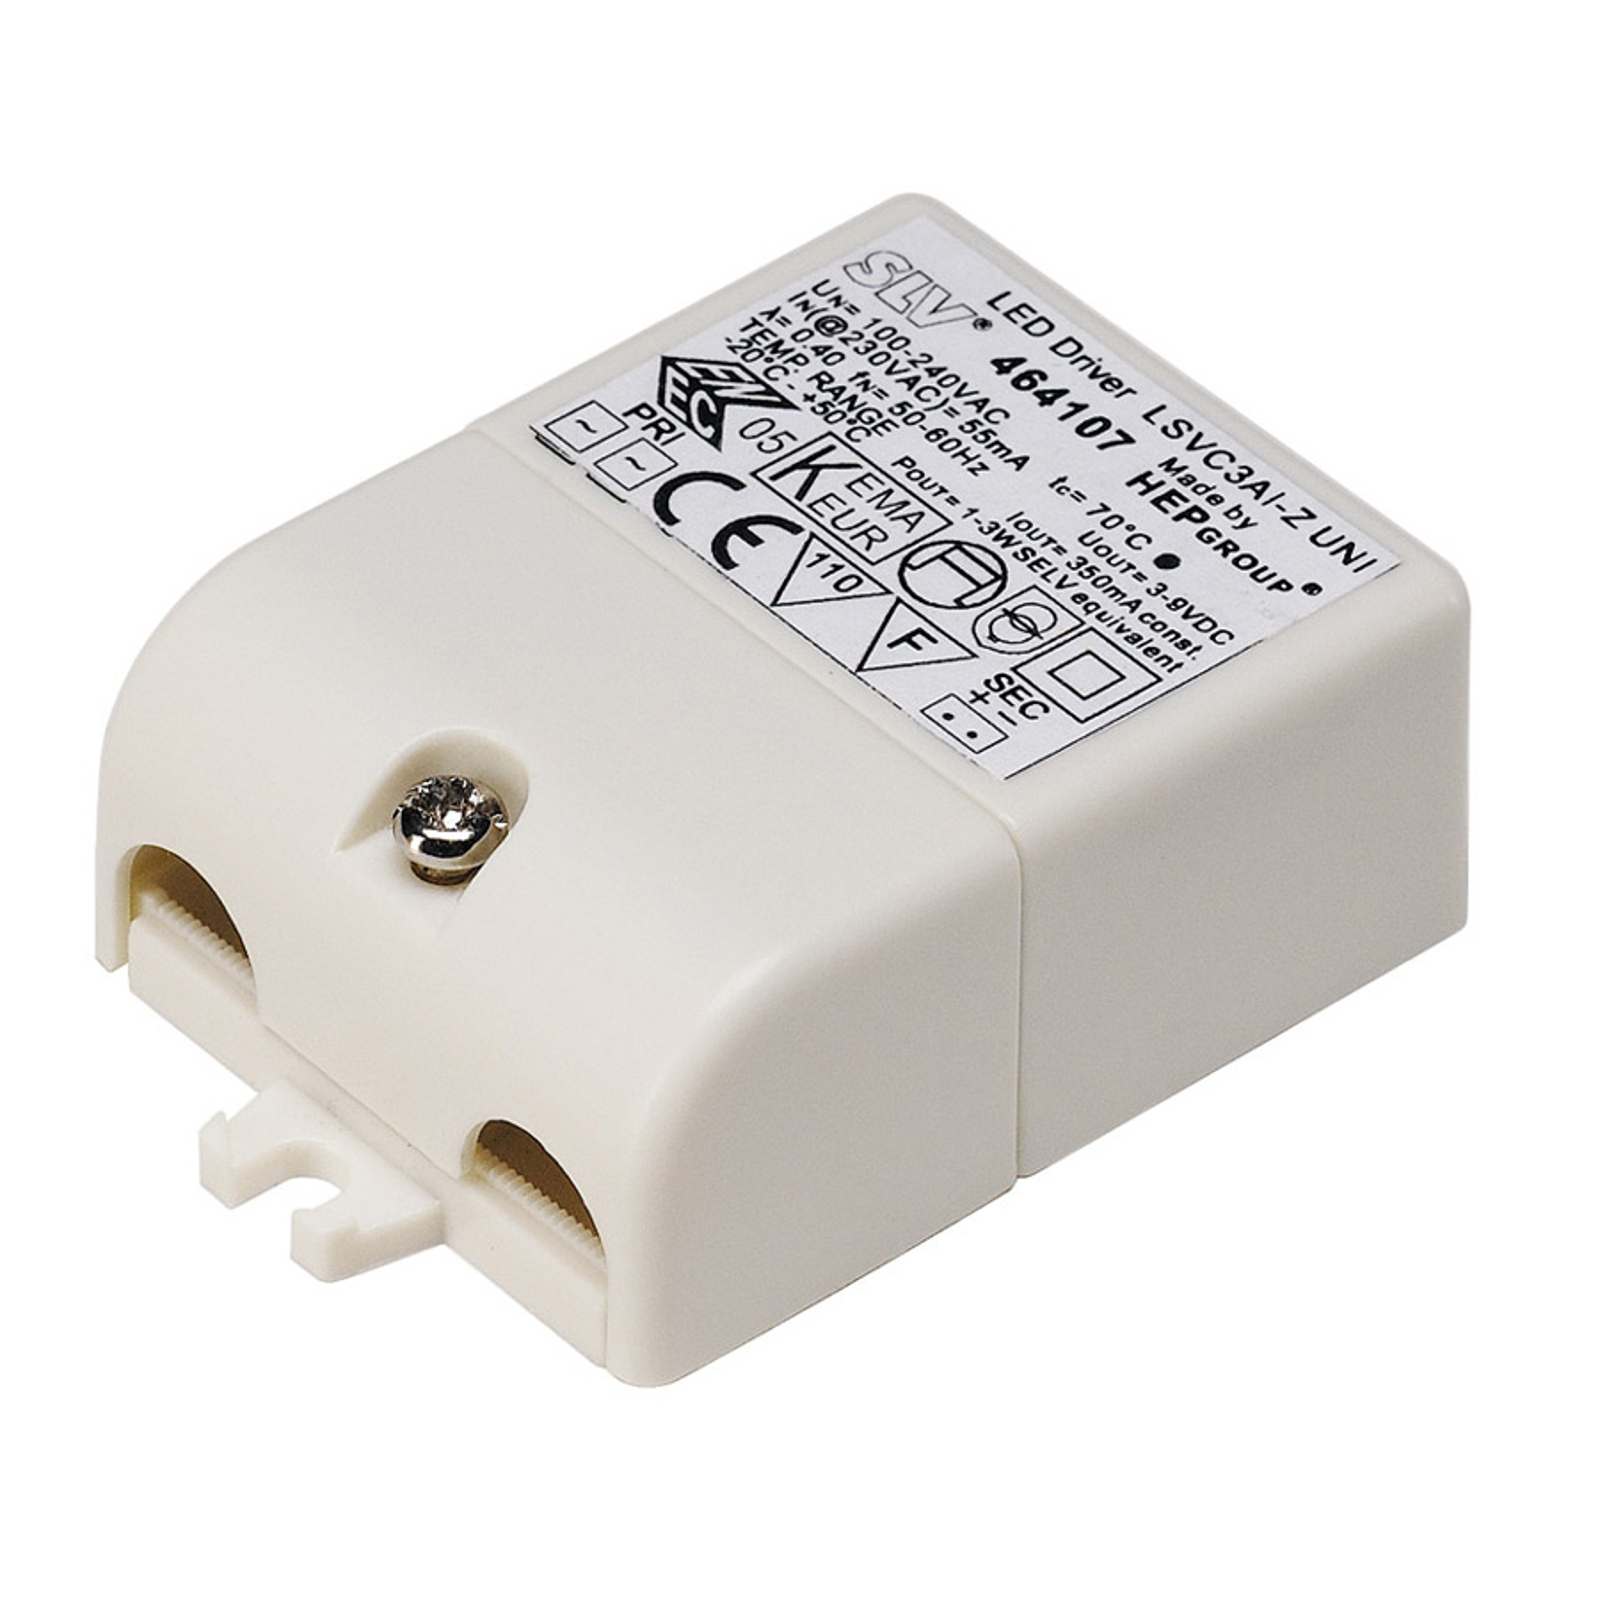 LED-driver for downlight Lightpoint 3 W, 350 mA